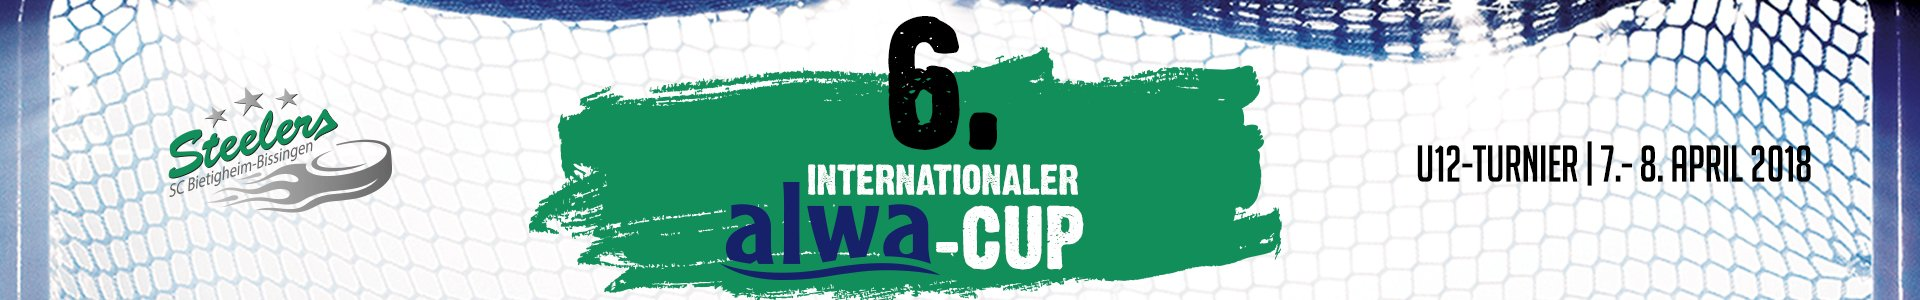 Website Header alwa-cup 2018 neu